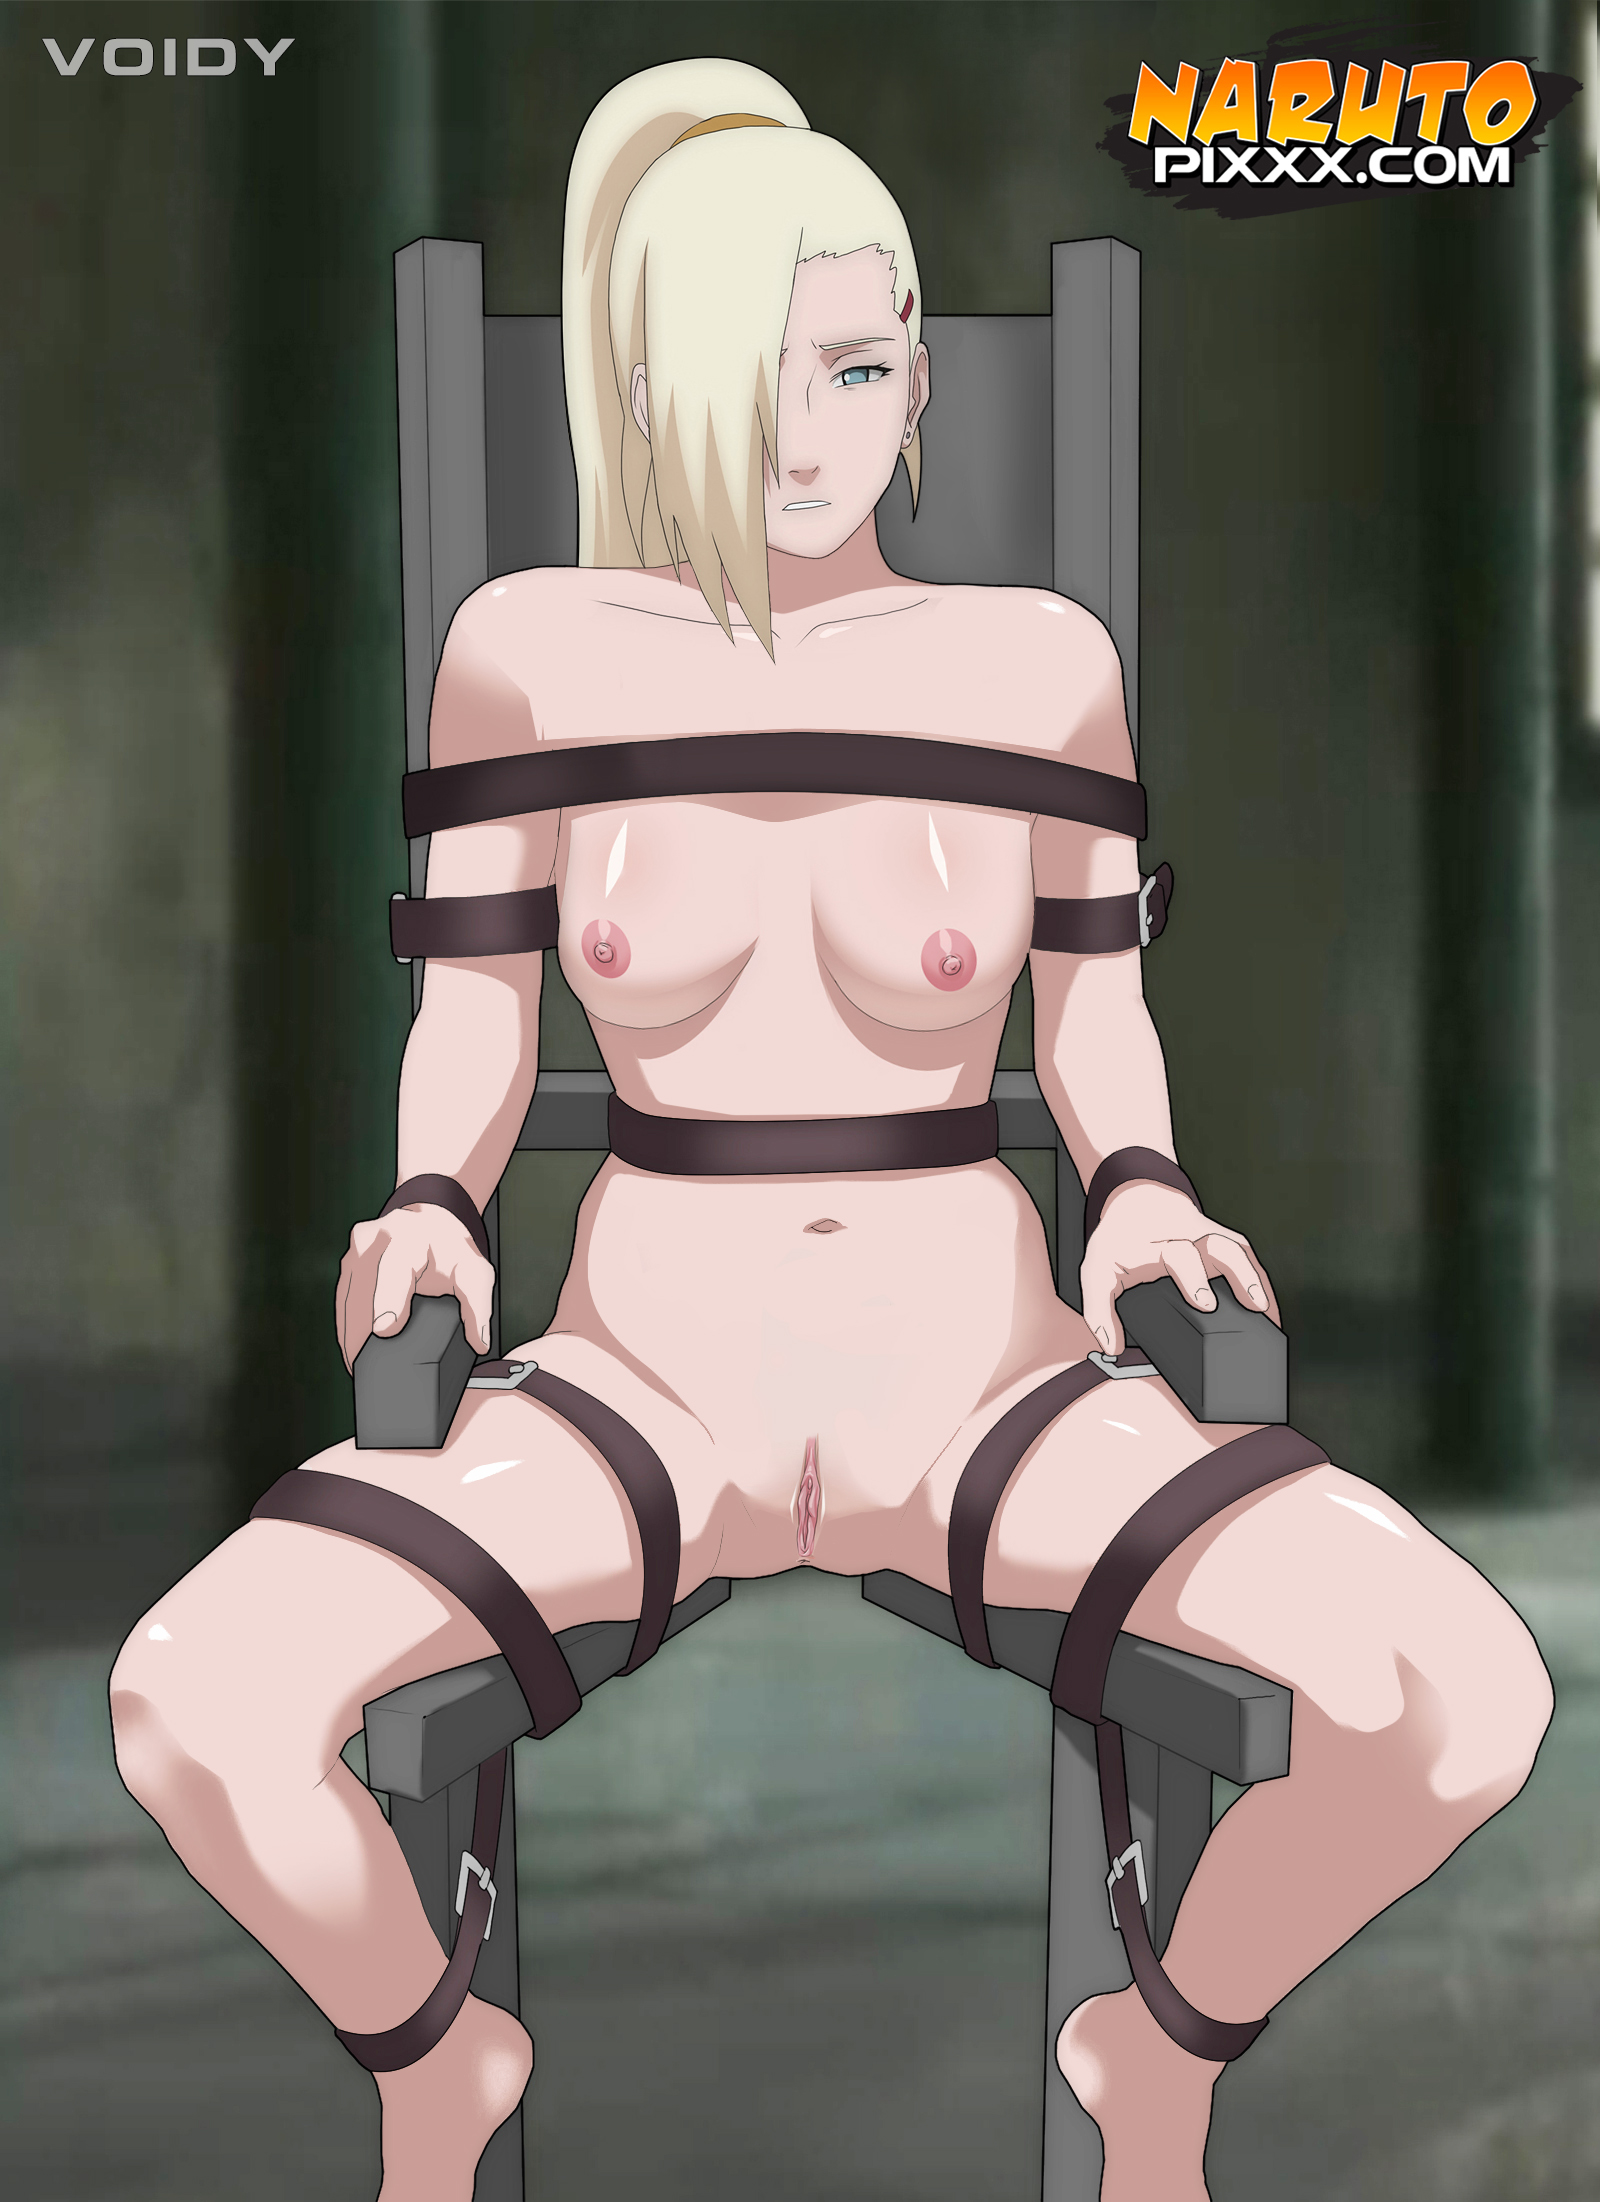 Nipples hentai naruto ino such